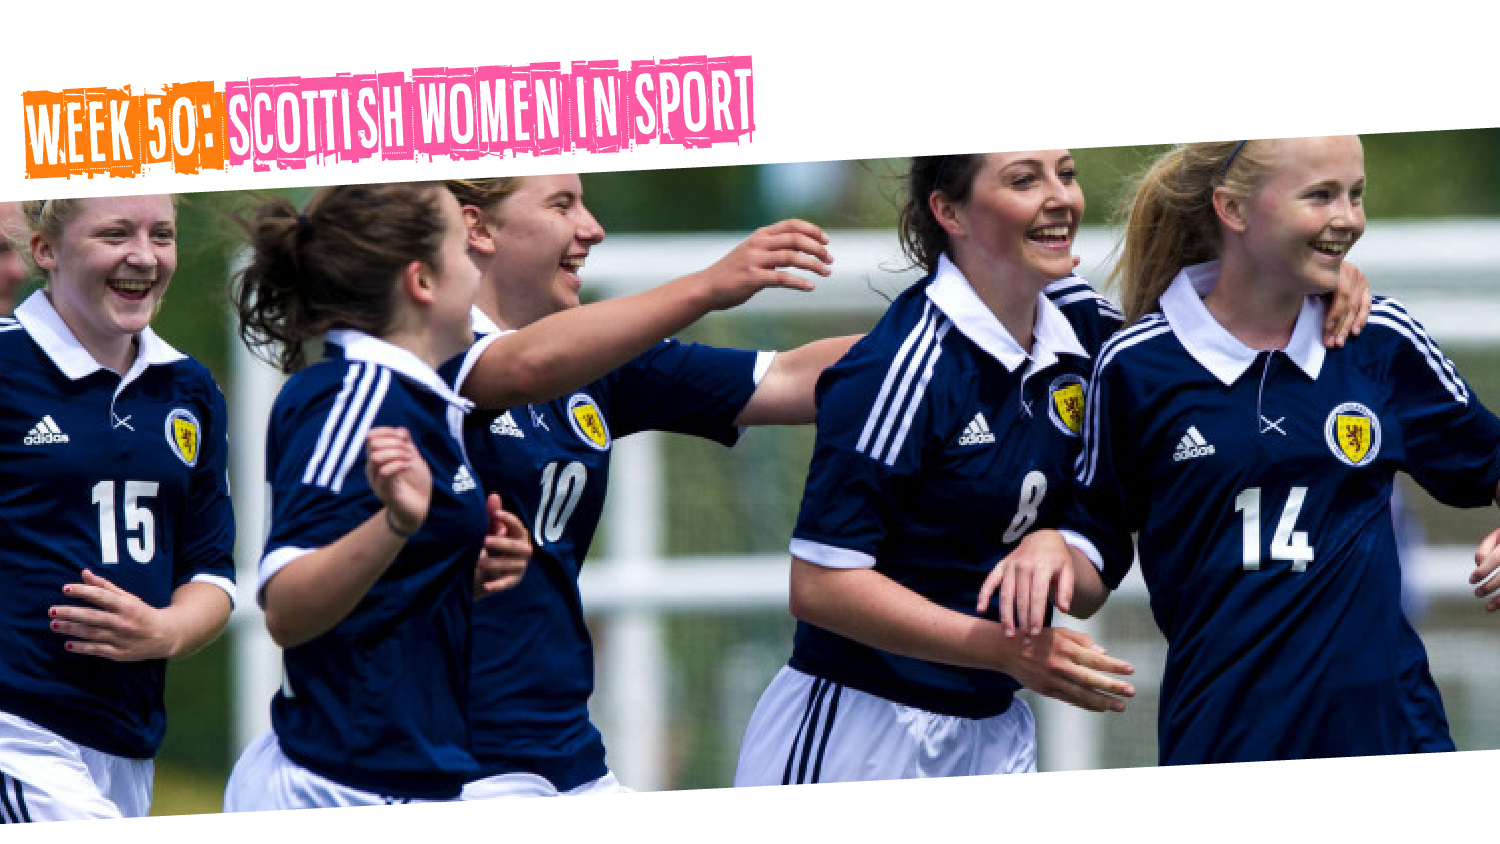 IYM Week 50: Scottish Women in Sport